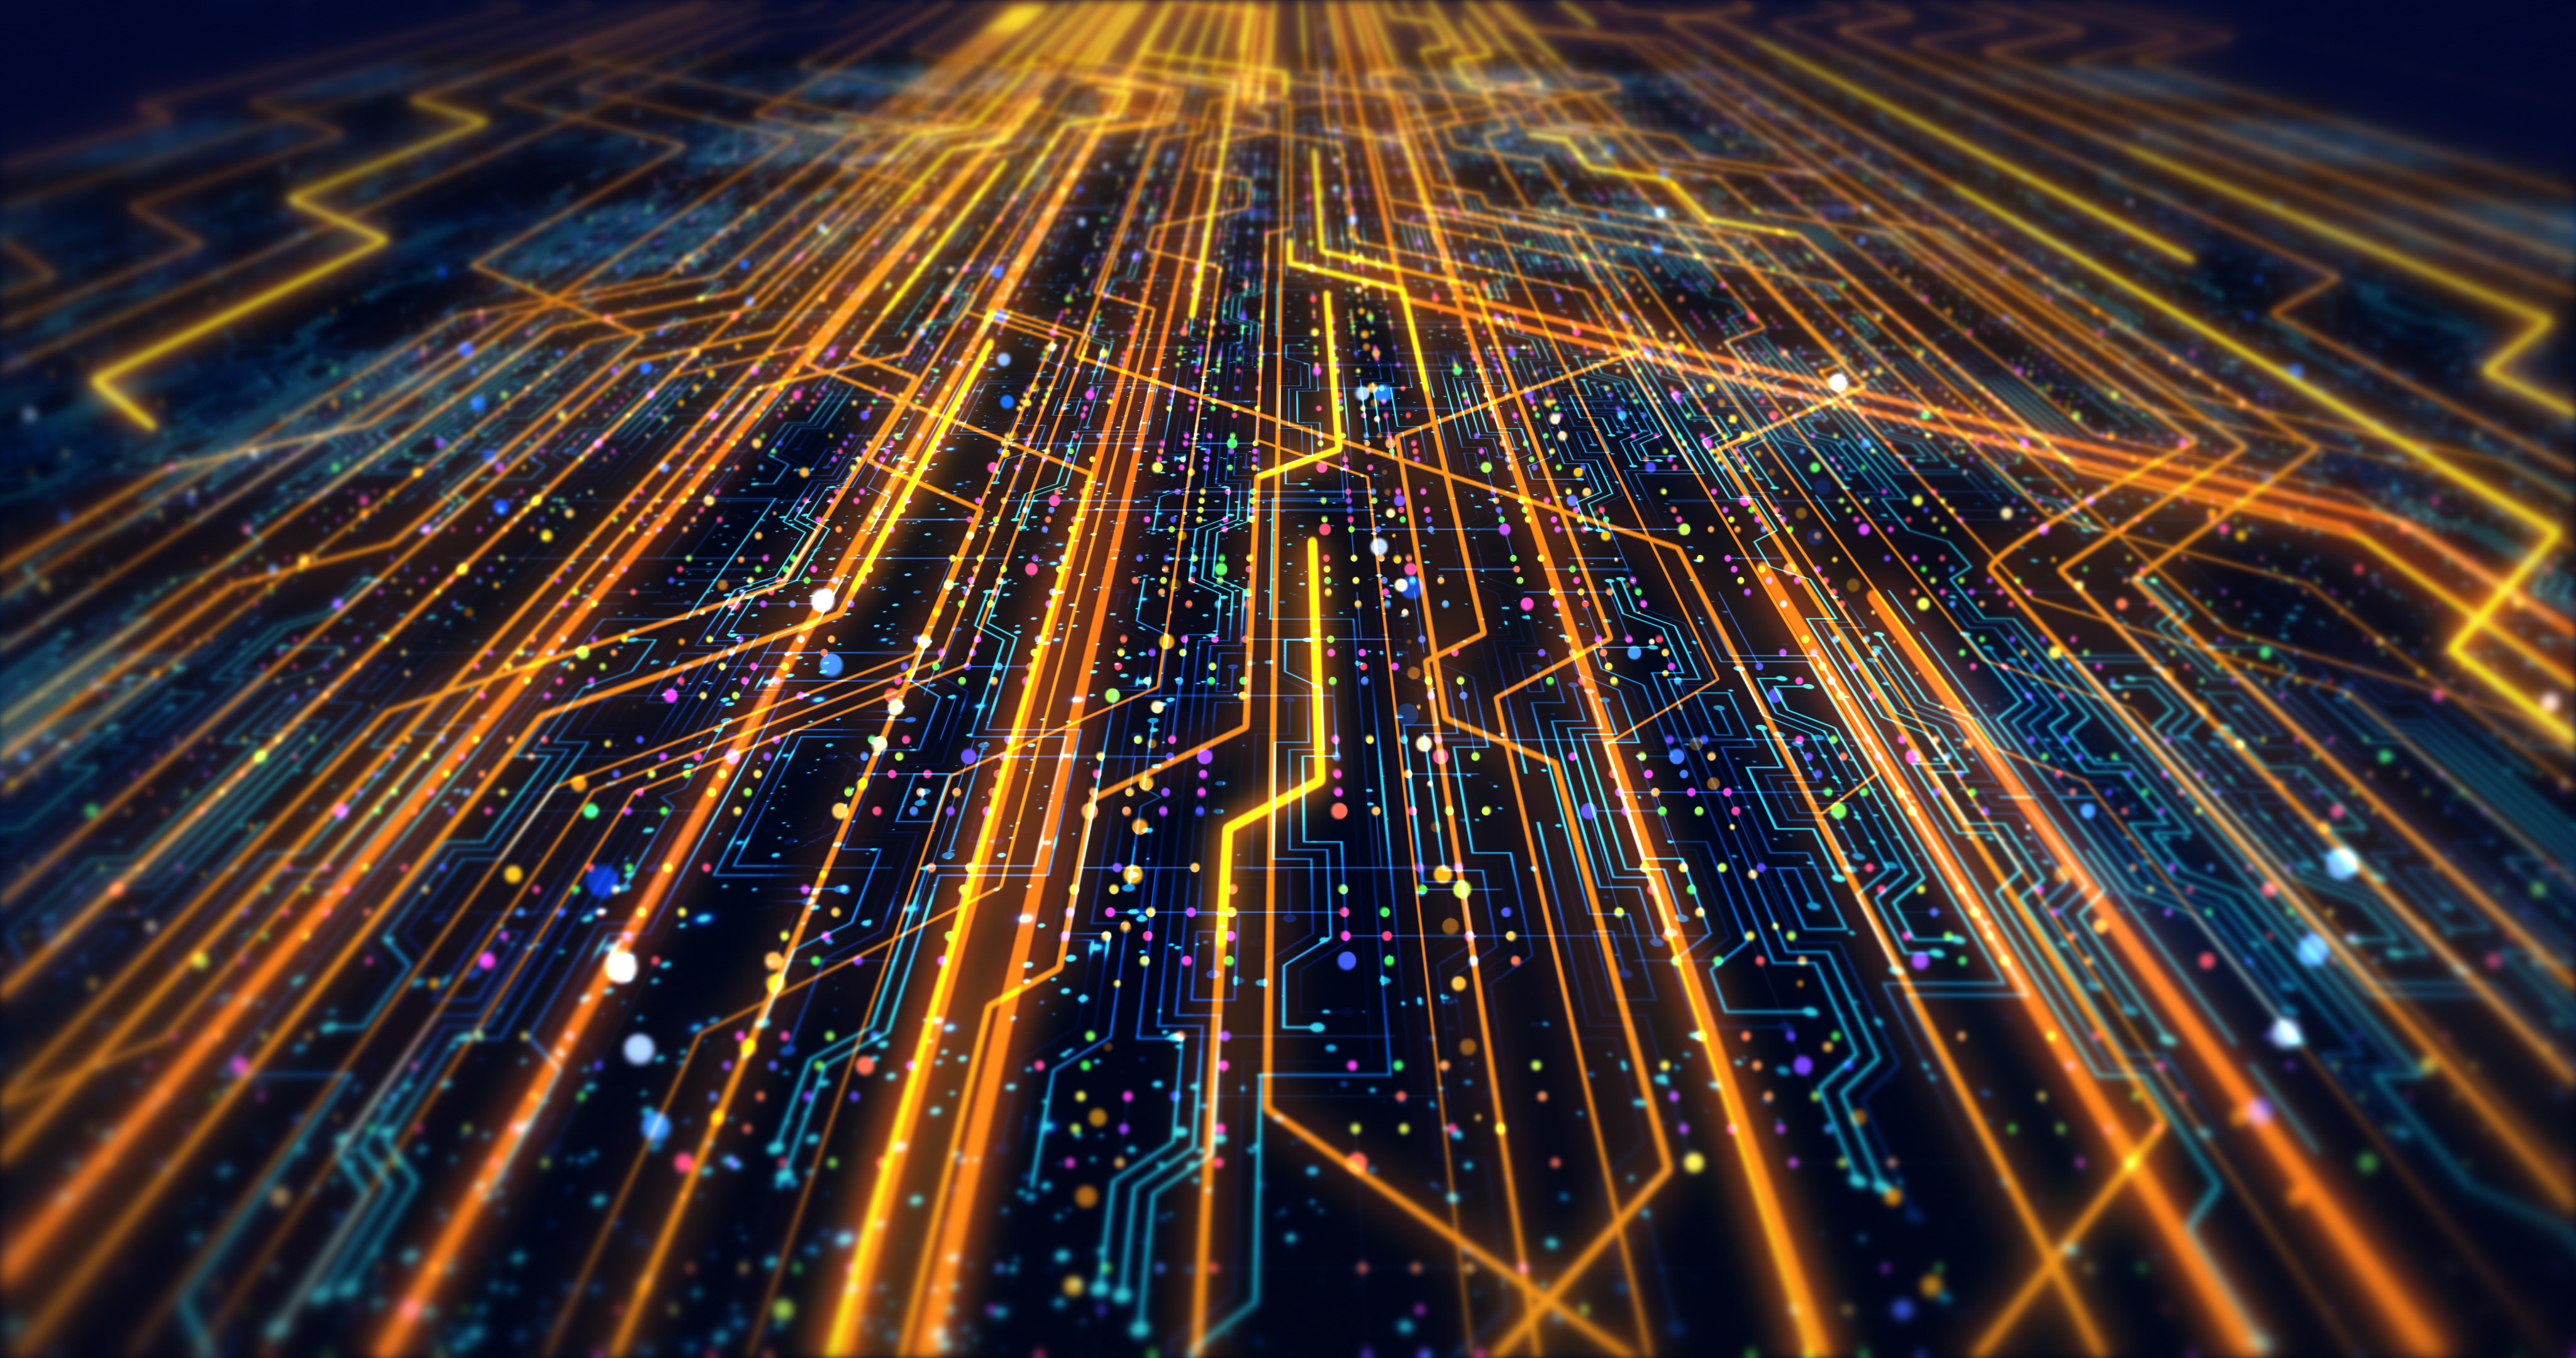 Futuristic Circuit Board Render With Bokeh Effects - Technology Related Concept